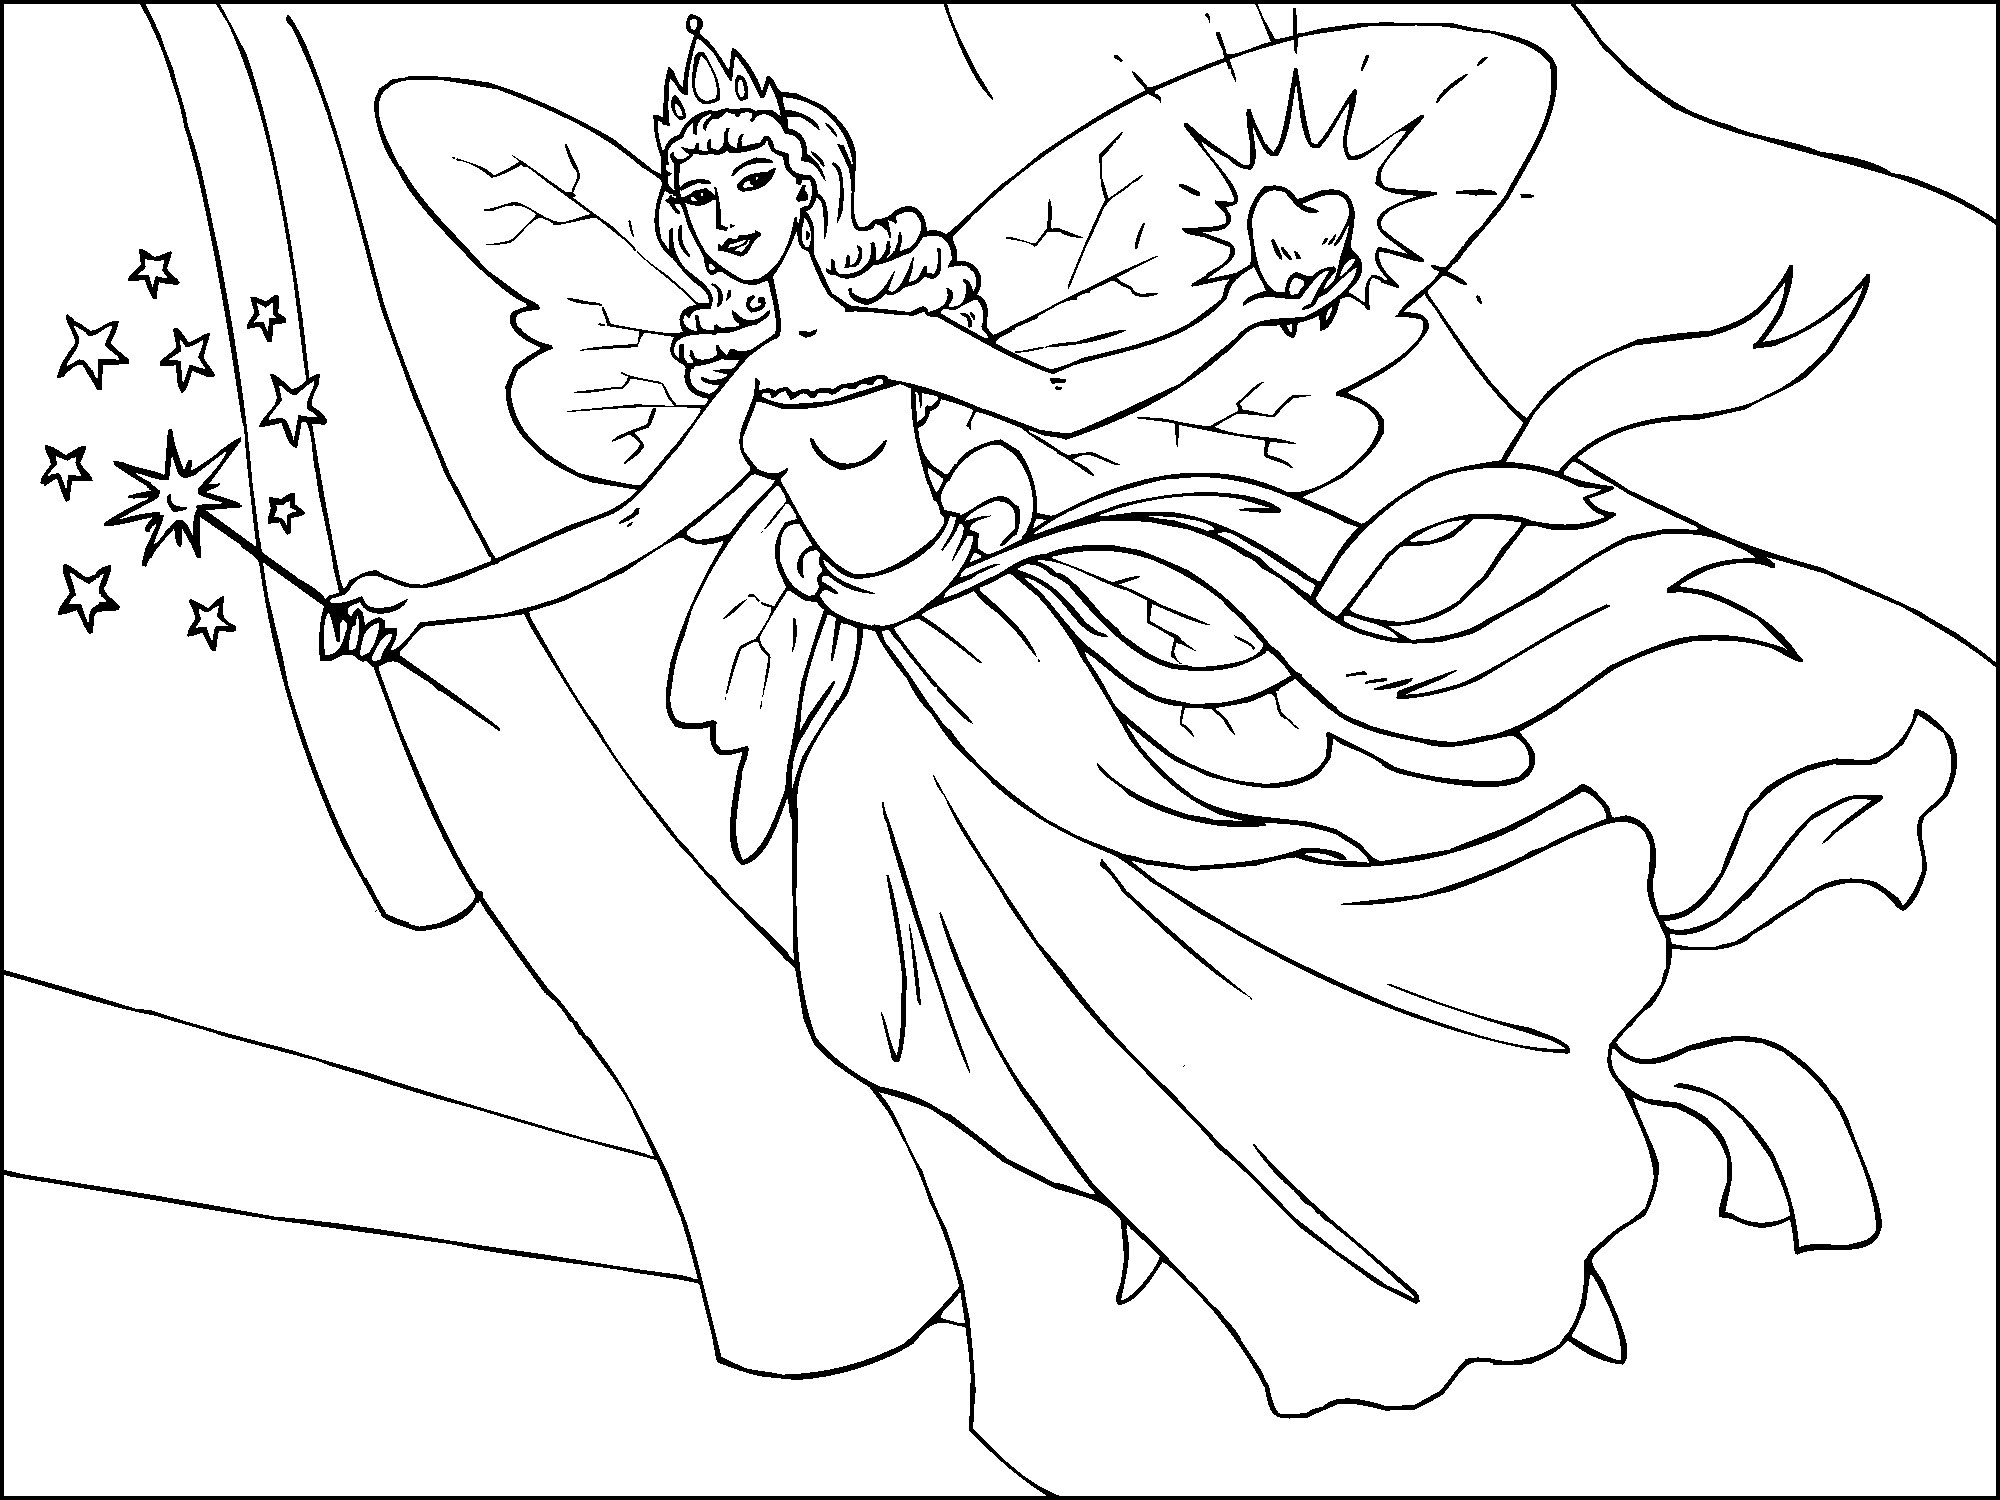 2000x1500 Fairies Coloring Pages To Print Free